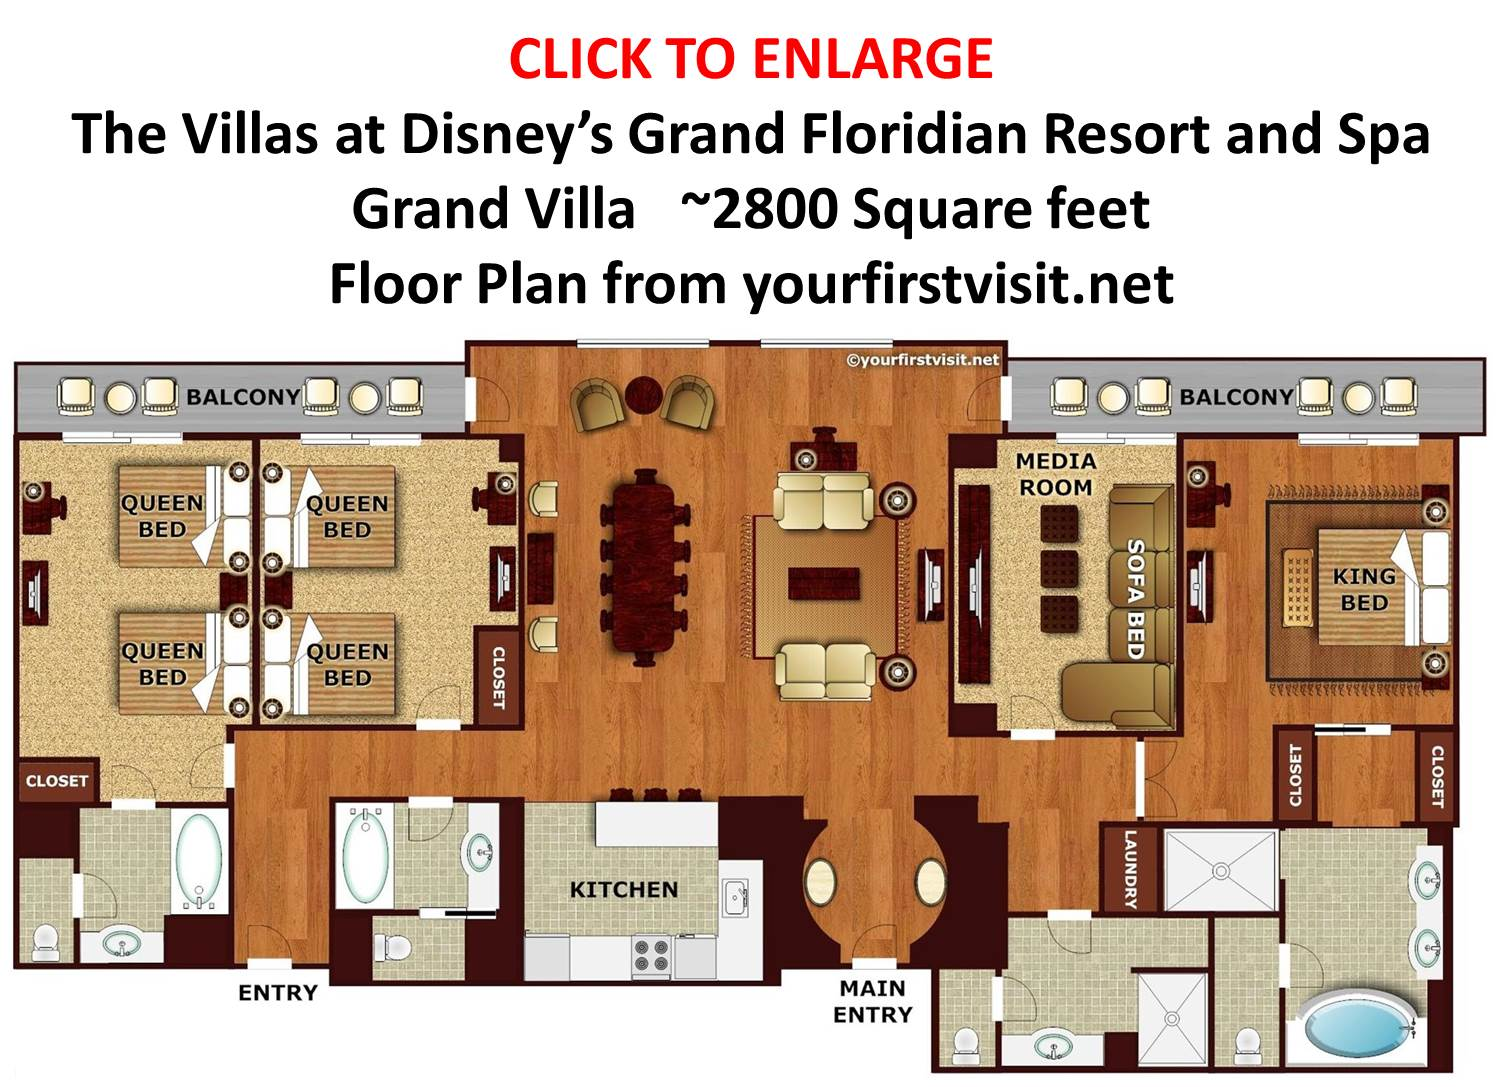 Theming And Accommodations At The Villas At Disney's Grand